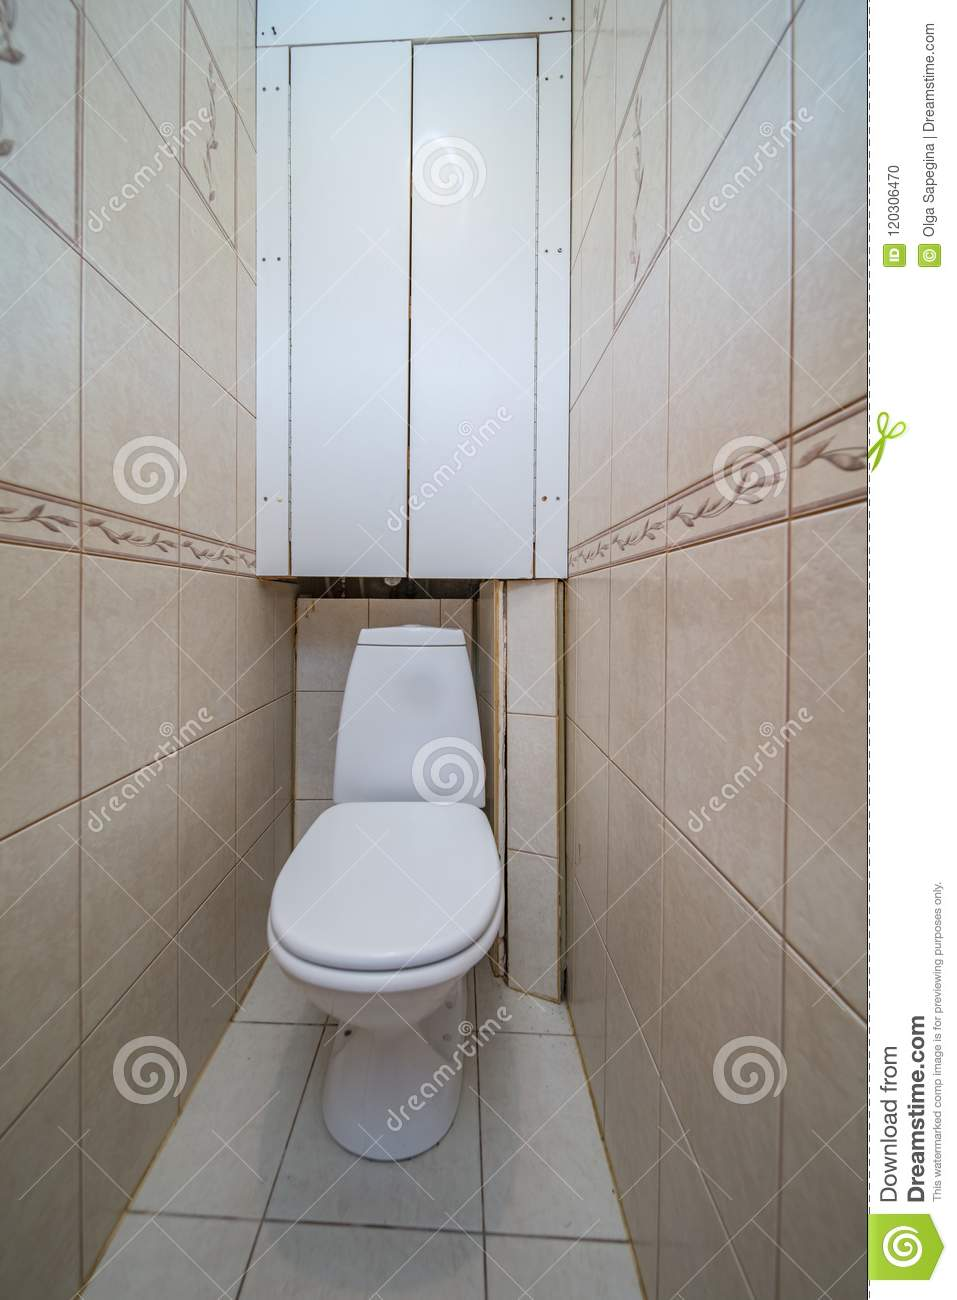 Restroom with toilet